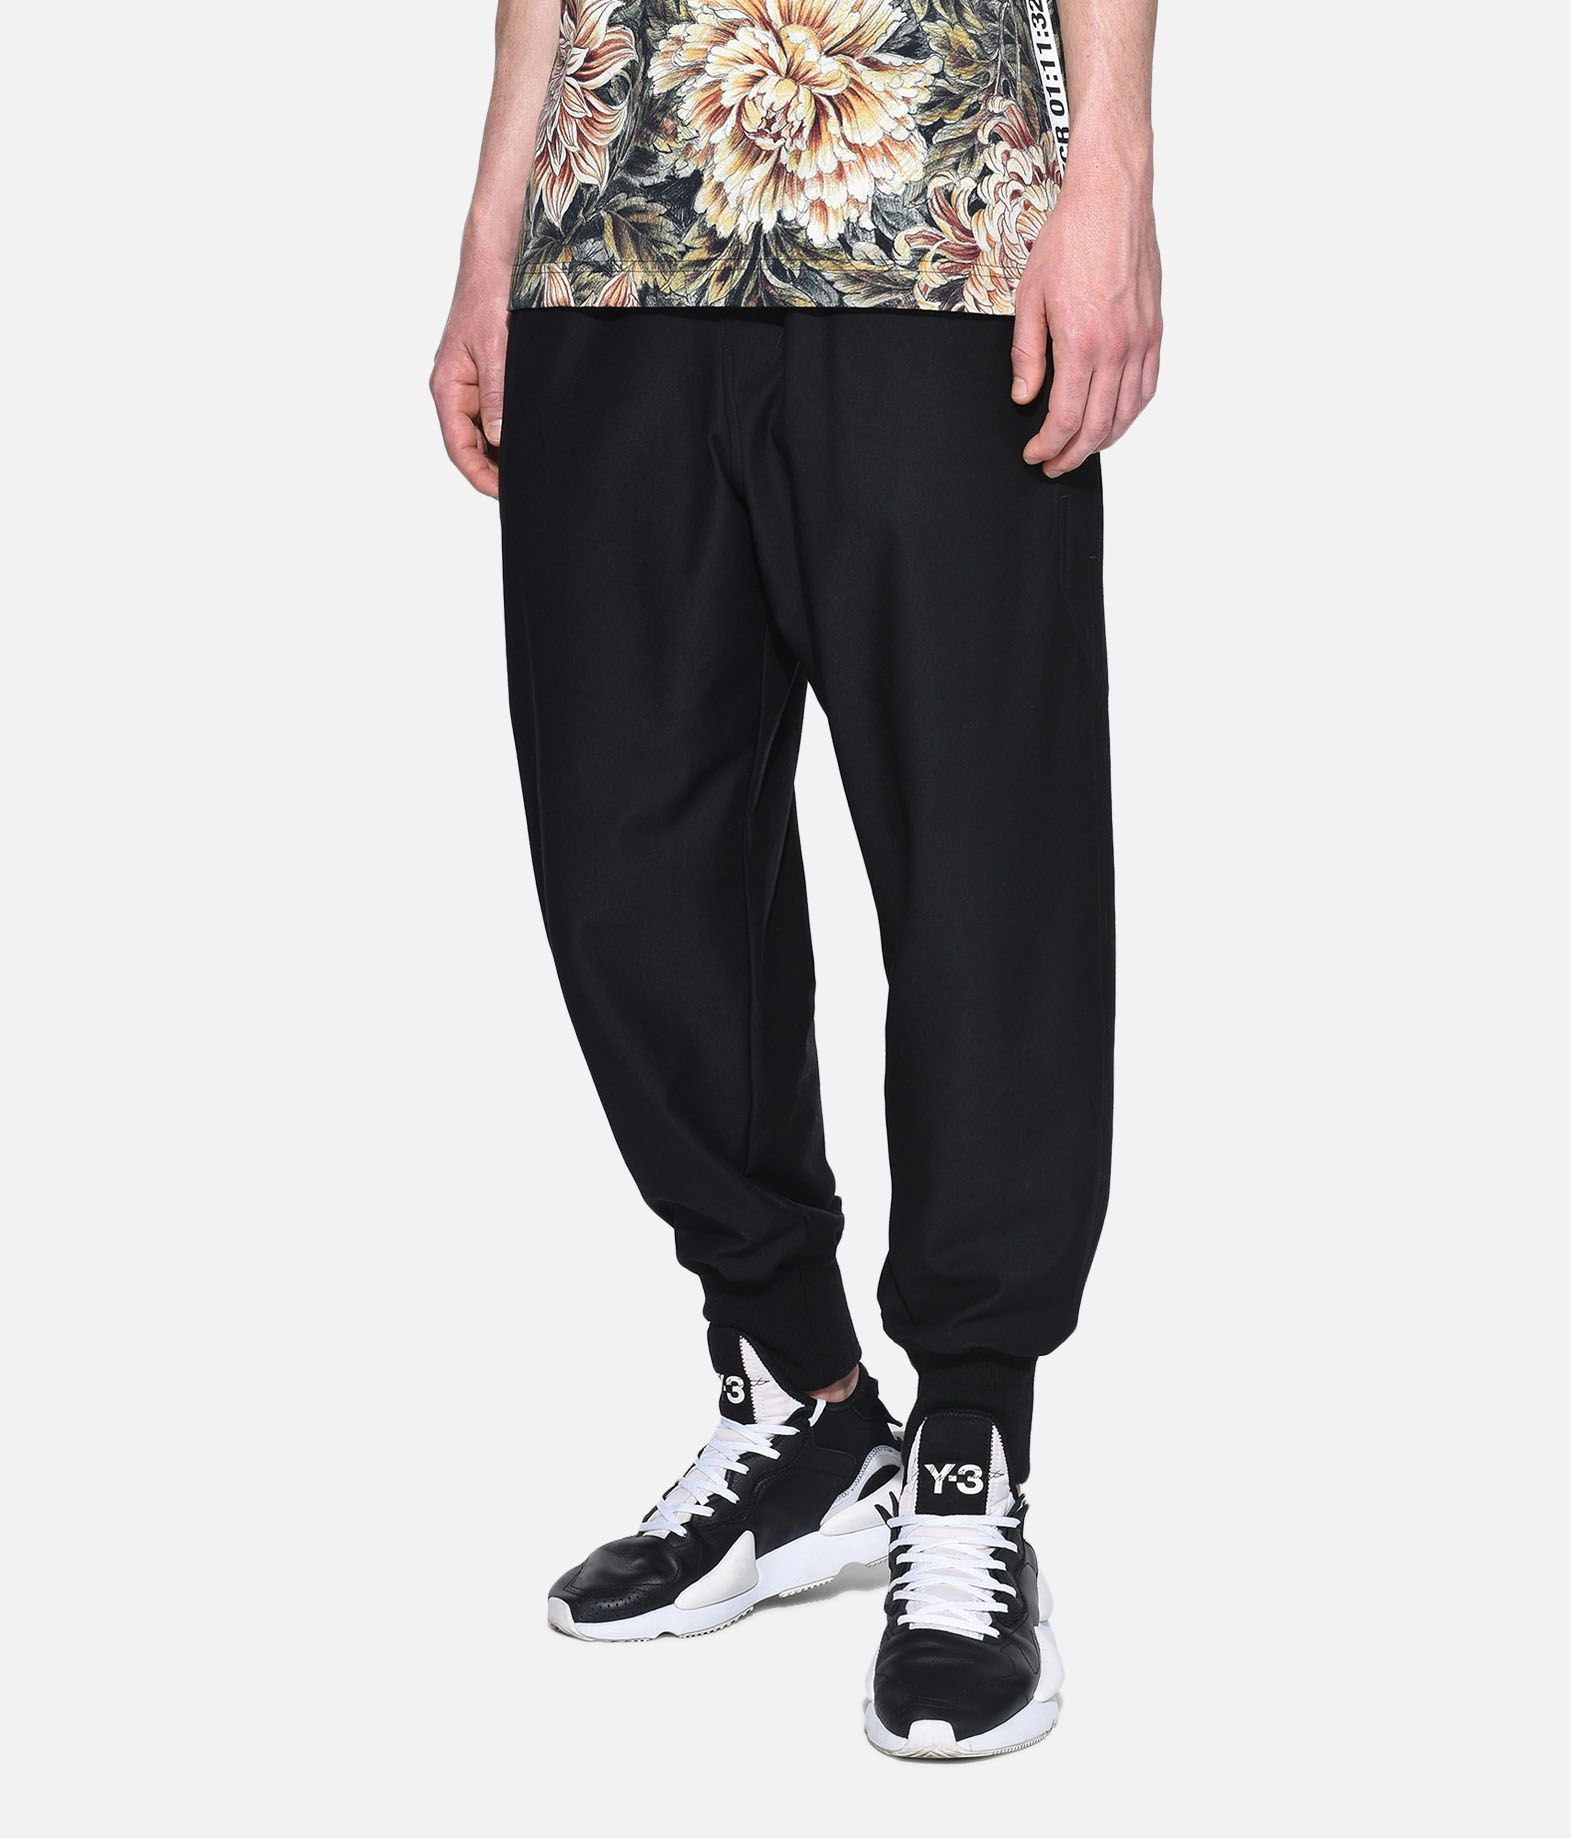 Y-3 Y-3 Quilted Pants Casual trouser Man e